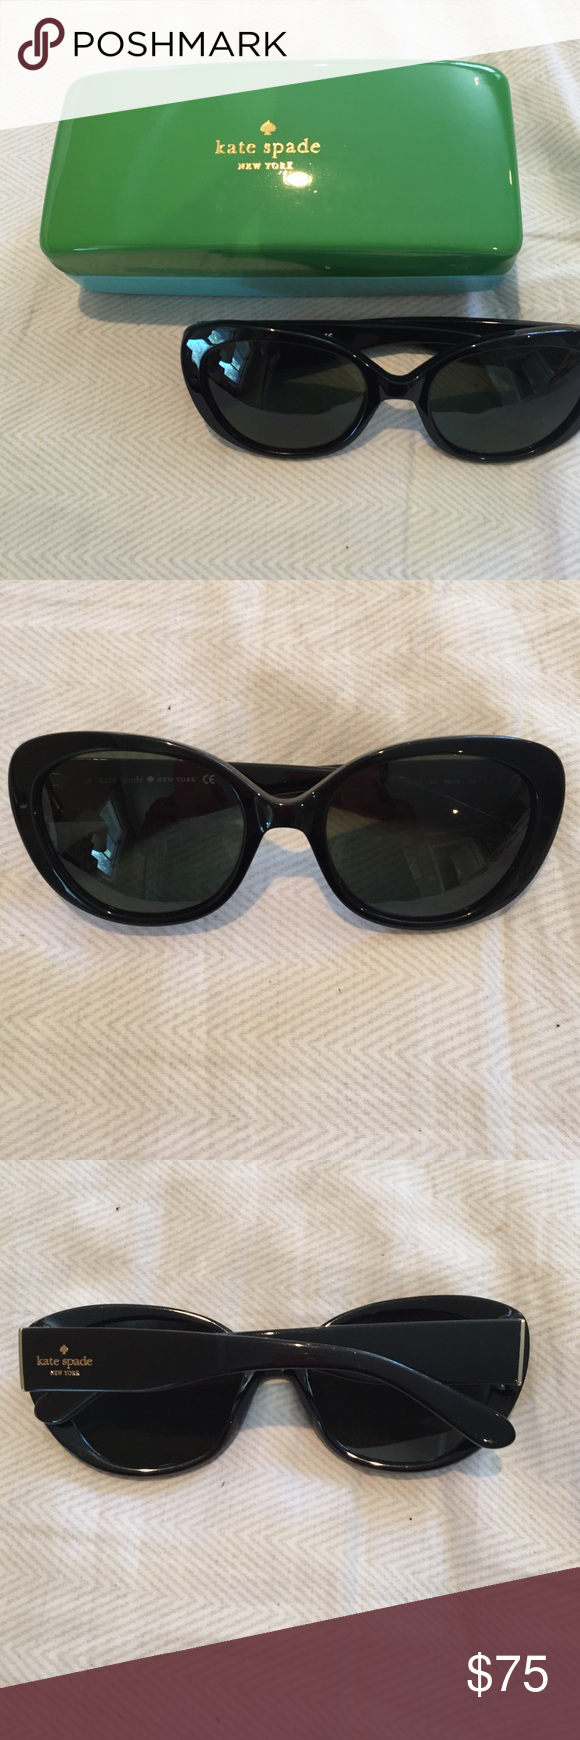 f8d9ae045c Kate Spade sunglasses Black Kate Spade sunglasses like new. kate spade  Accessories Sunglasses